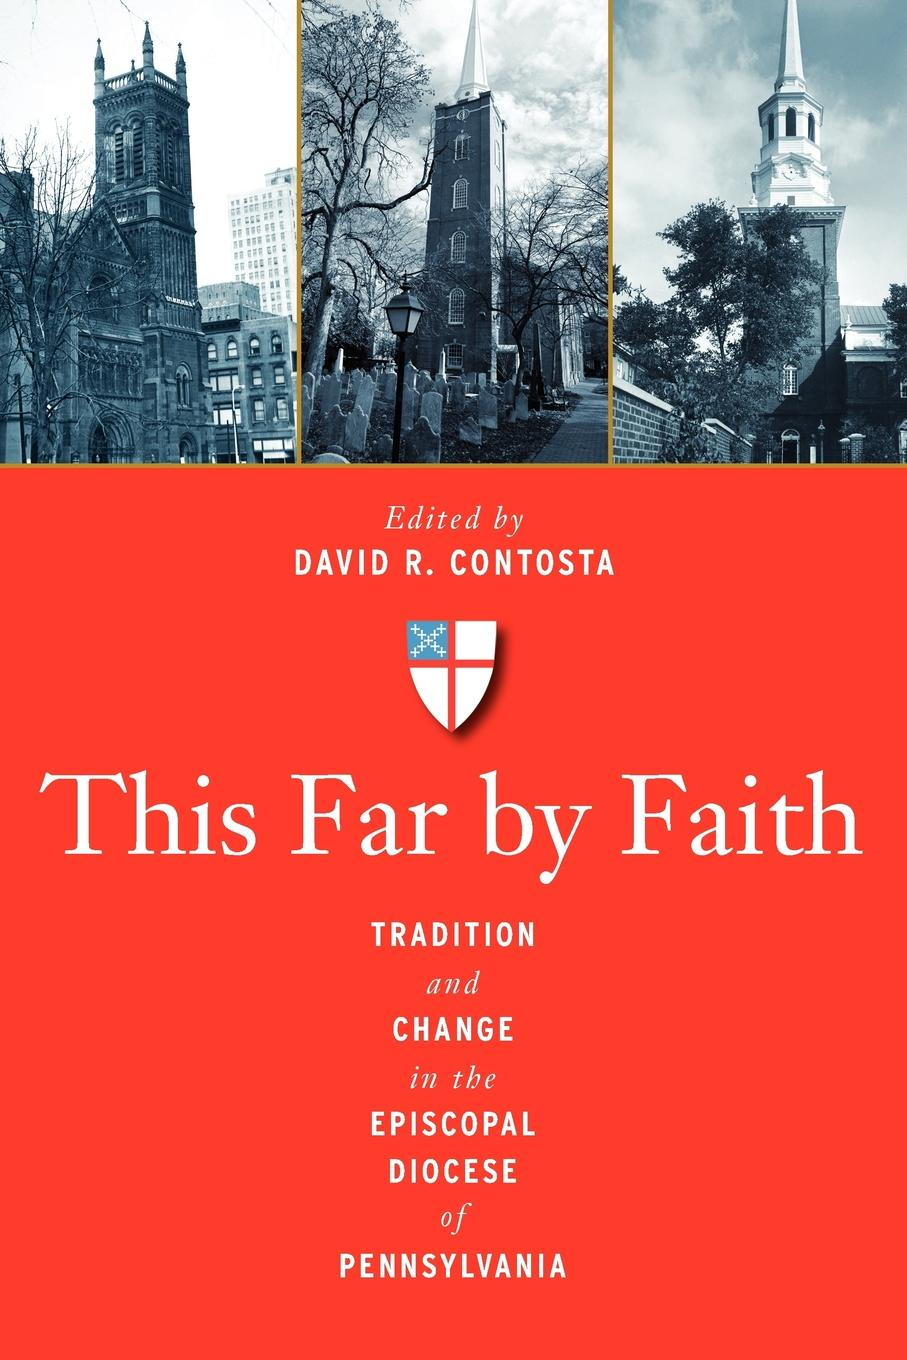 This Far by Faith. Tradition and Change in the Episcopal Diocese of Pennsylvania jennings arthur charles ecclesia anglicana a history of the church of christ in england